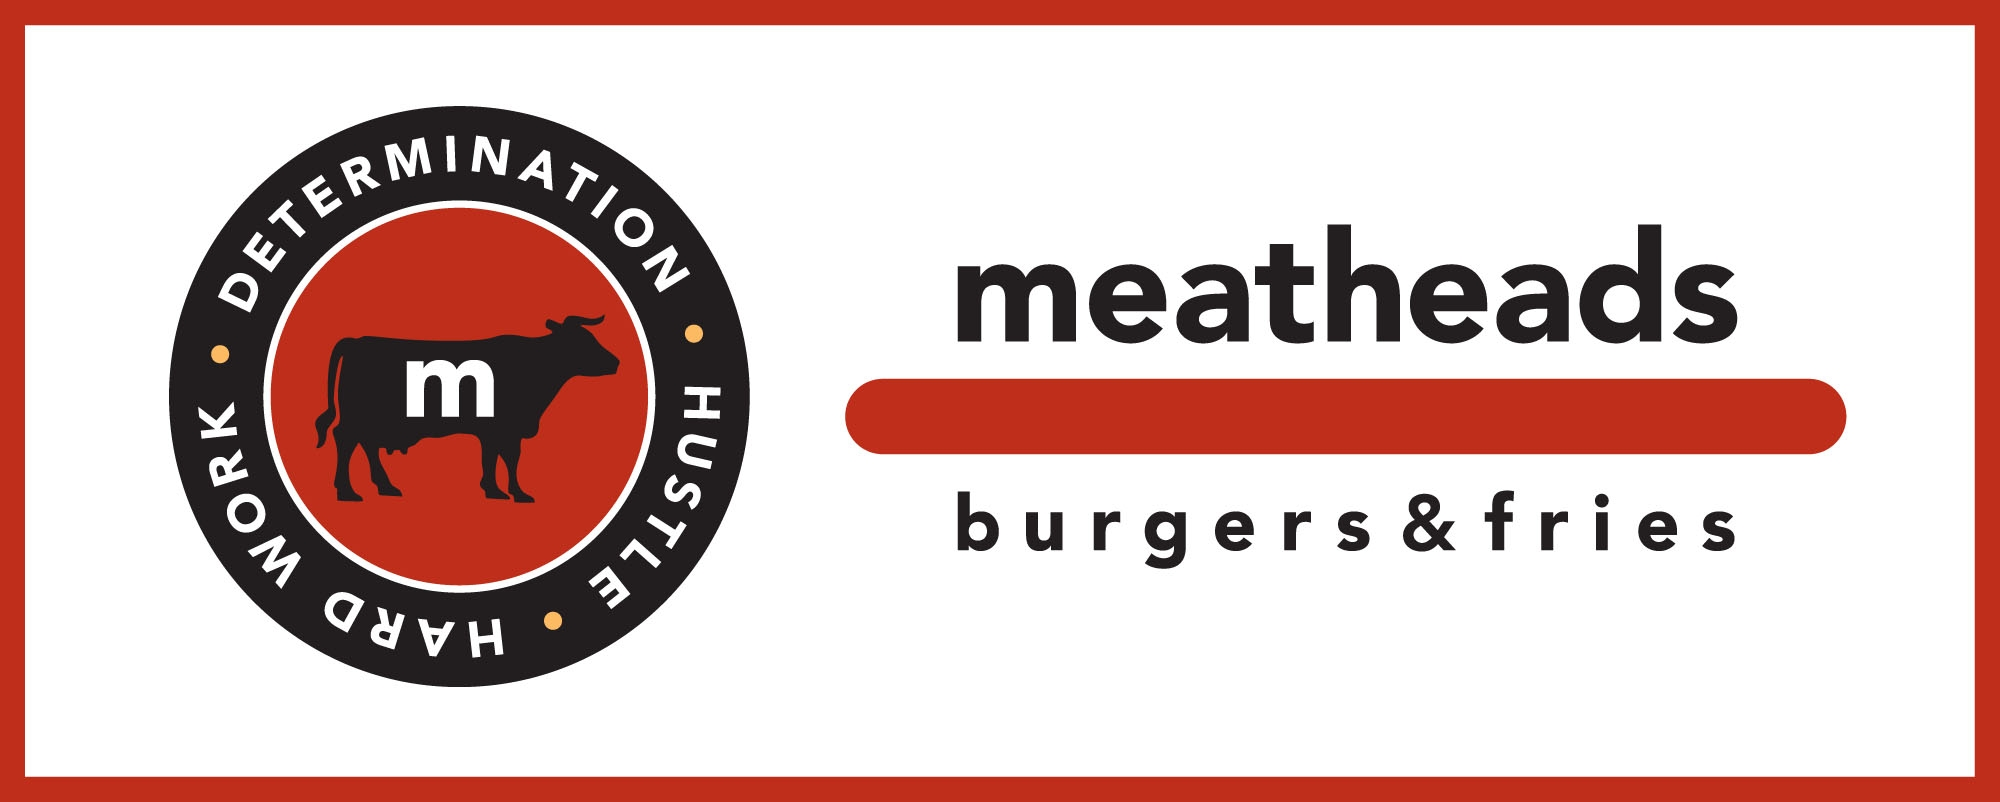 Meatheads Burgers @ Fries